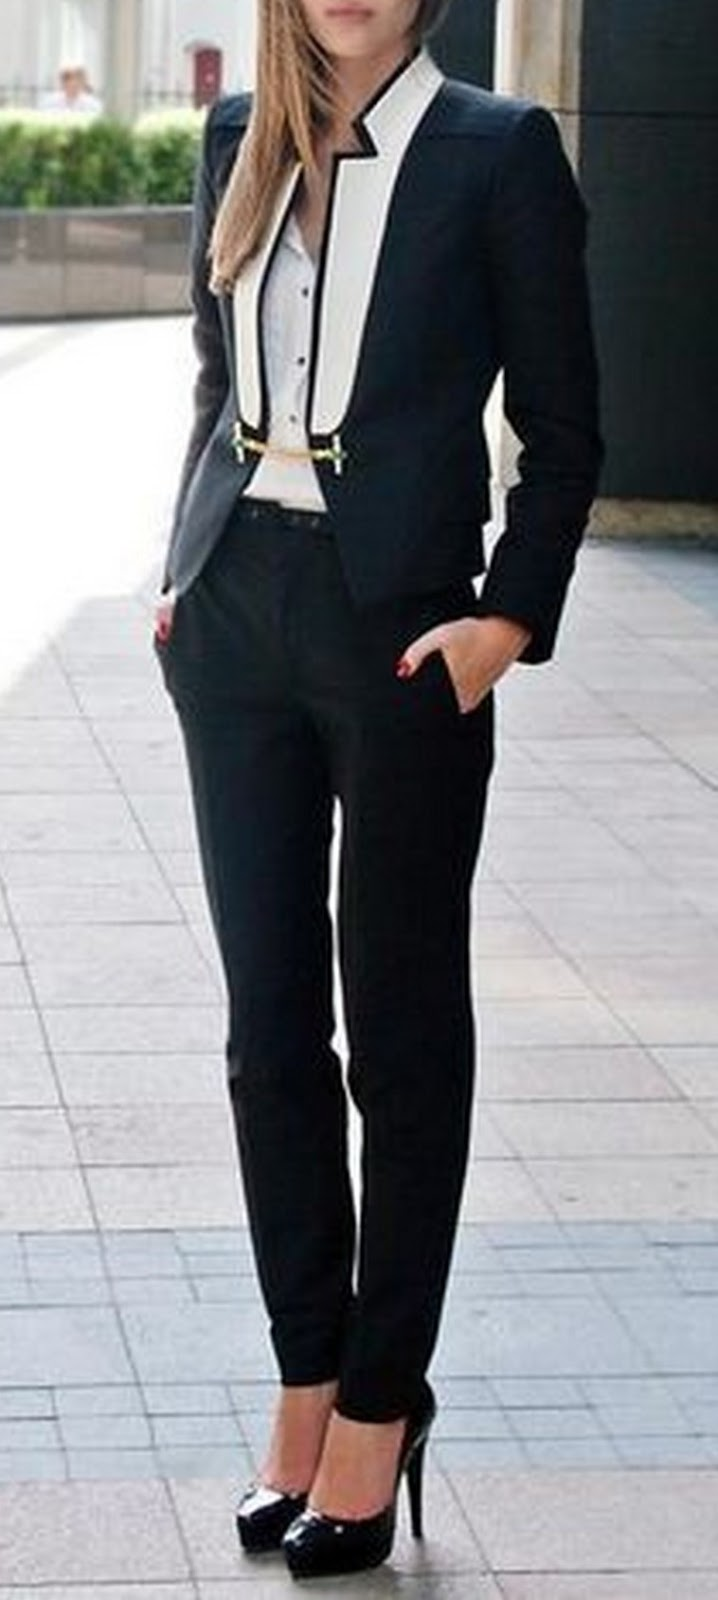 stylish office look / blazer + shirt + pants + heels